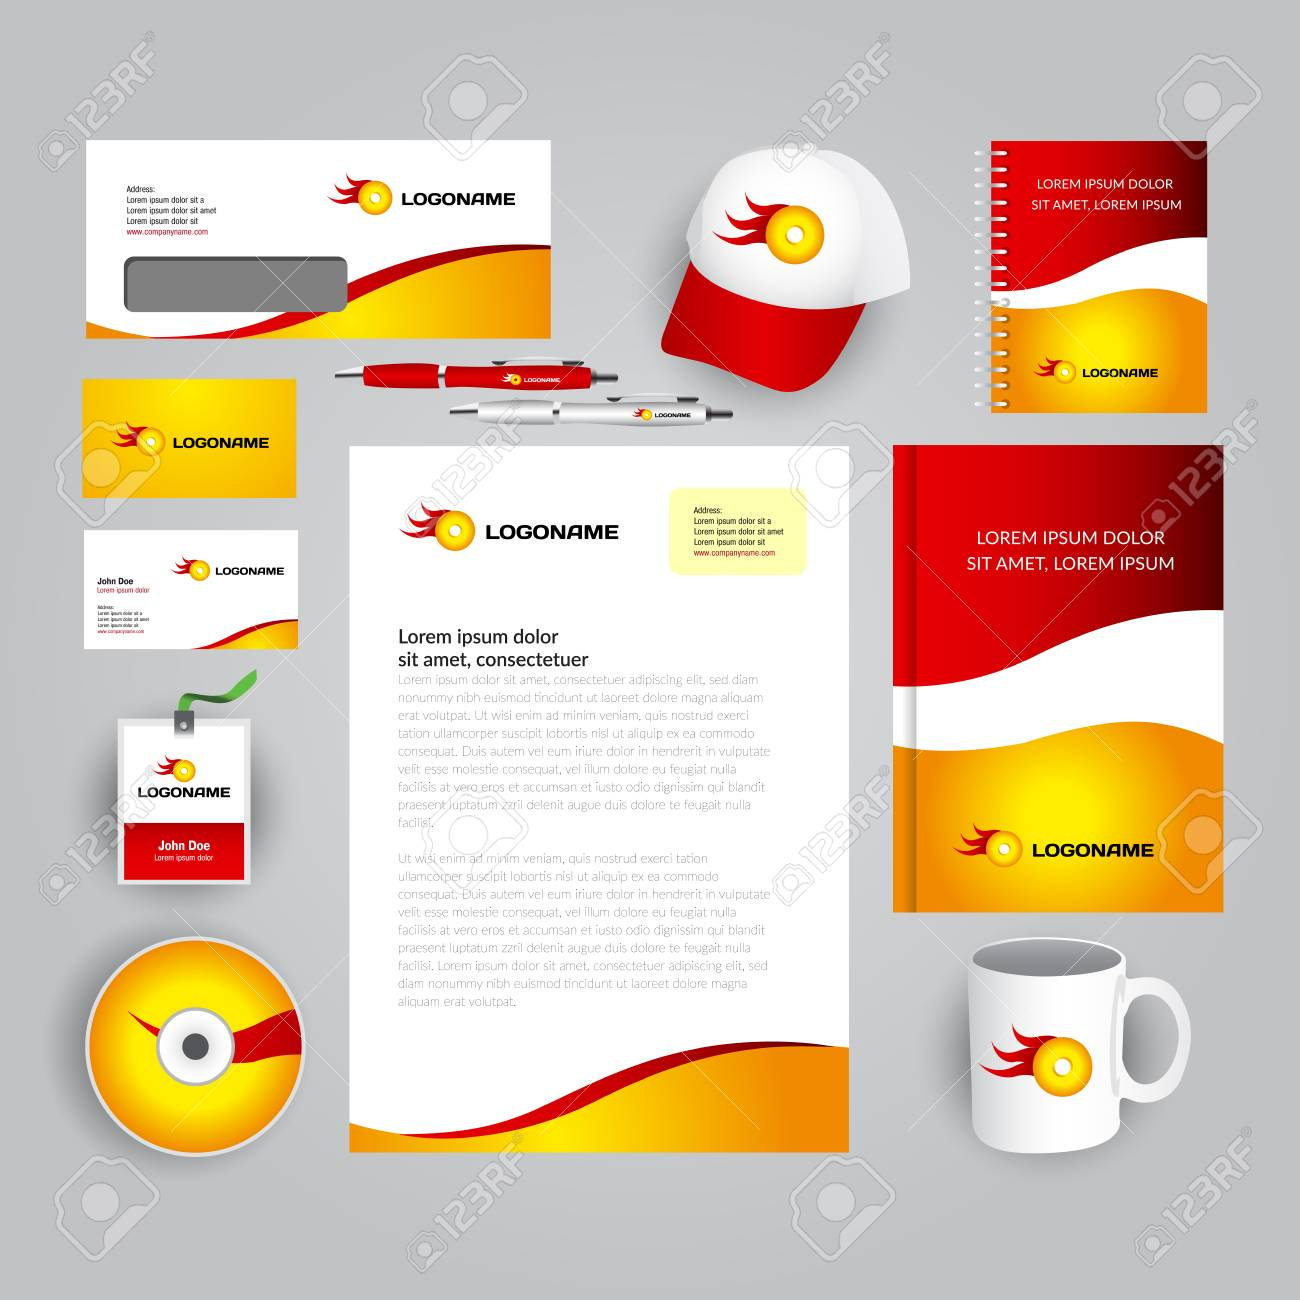 Corporate Identity Template With Logo Gold Yellow And Red Colors